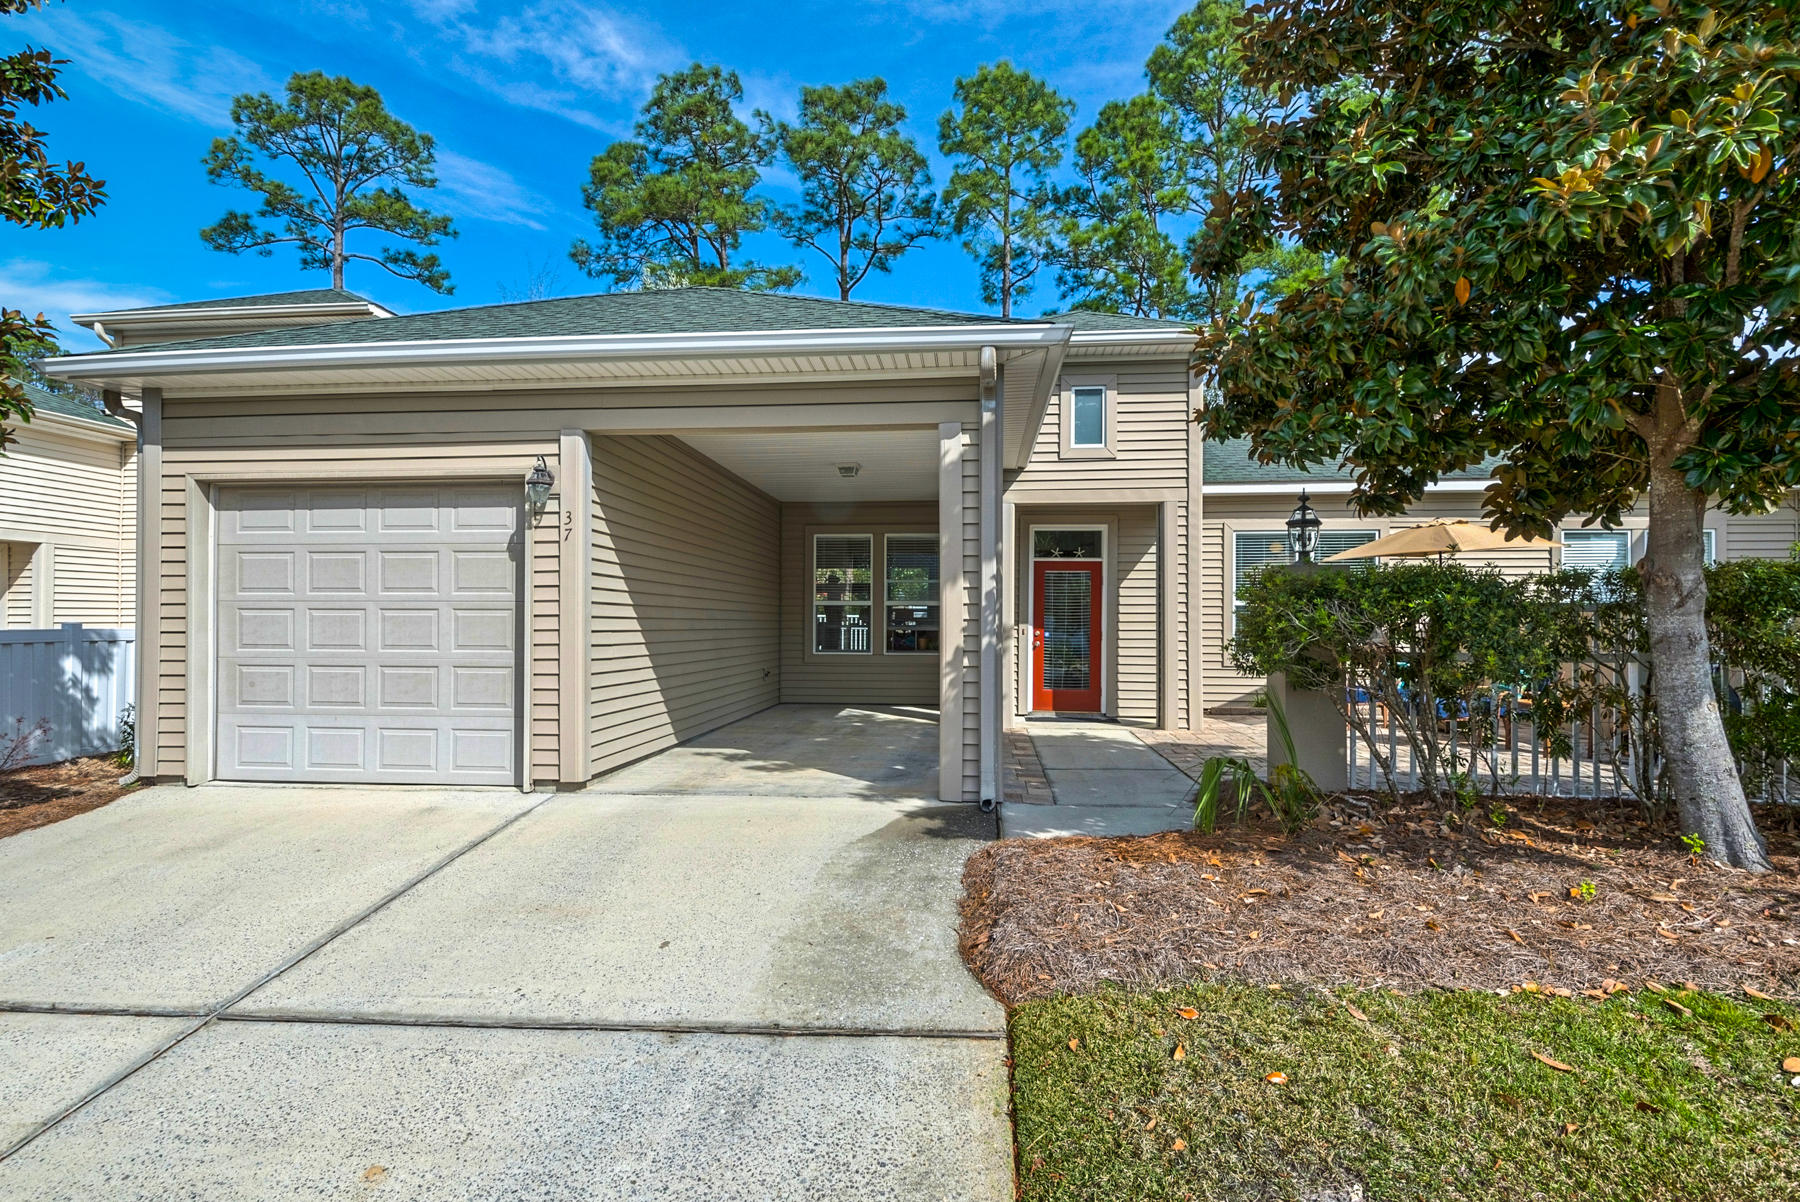 This meticulously cared for town home is located within walking distance to the golf club, a short distance to the beach and 30A bike trails. It is a gated community with a relaxing neighborhood pool. This warm & inviting 2-bedroom, 2 full bath home has an open concept plan with combined living & dining areas. The large living room has a fireplace & french doors that lead to the enclosed courtyard that brings the outside in, perfect for coffee or happy hour. The galley kitchen looks into the dining room and has Corian counter tops, stainless steel appliances and an eat in bar. The master bedroom lets the light in with windows overlooking the courtyard with a large master bath and a walk in closet. The second bedroom is a nice size & overlooks the front courtyard. ADT Pulse Security conveys